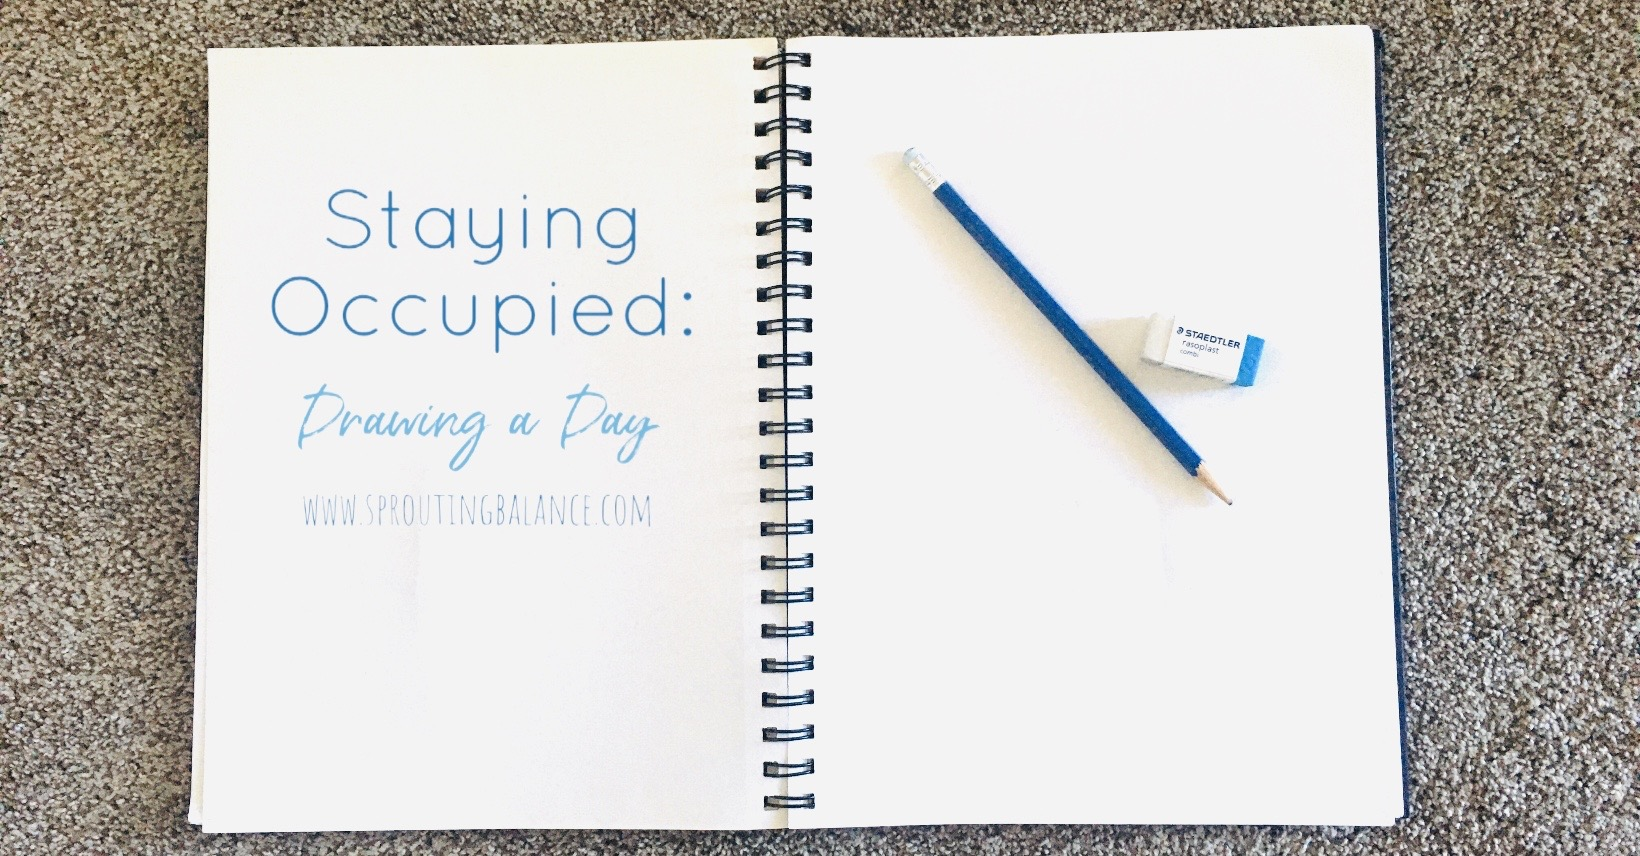 Staying Occupied: Drawing a Day | www.sproutingbalance.com | #stayhome #socialdistancing #bepositive